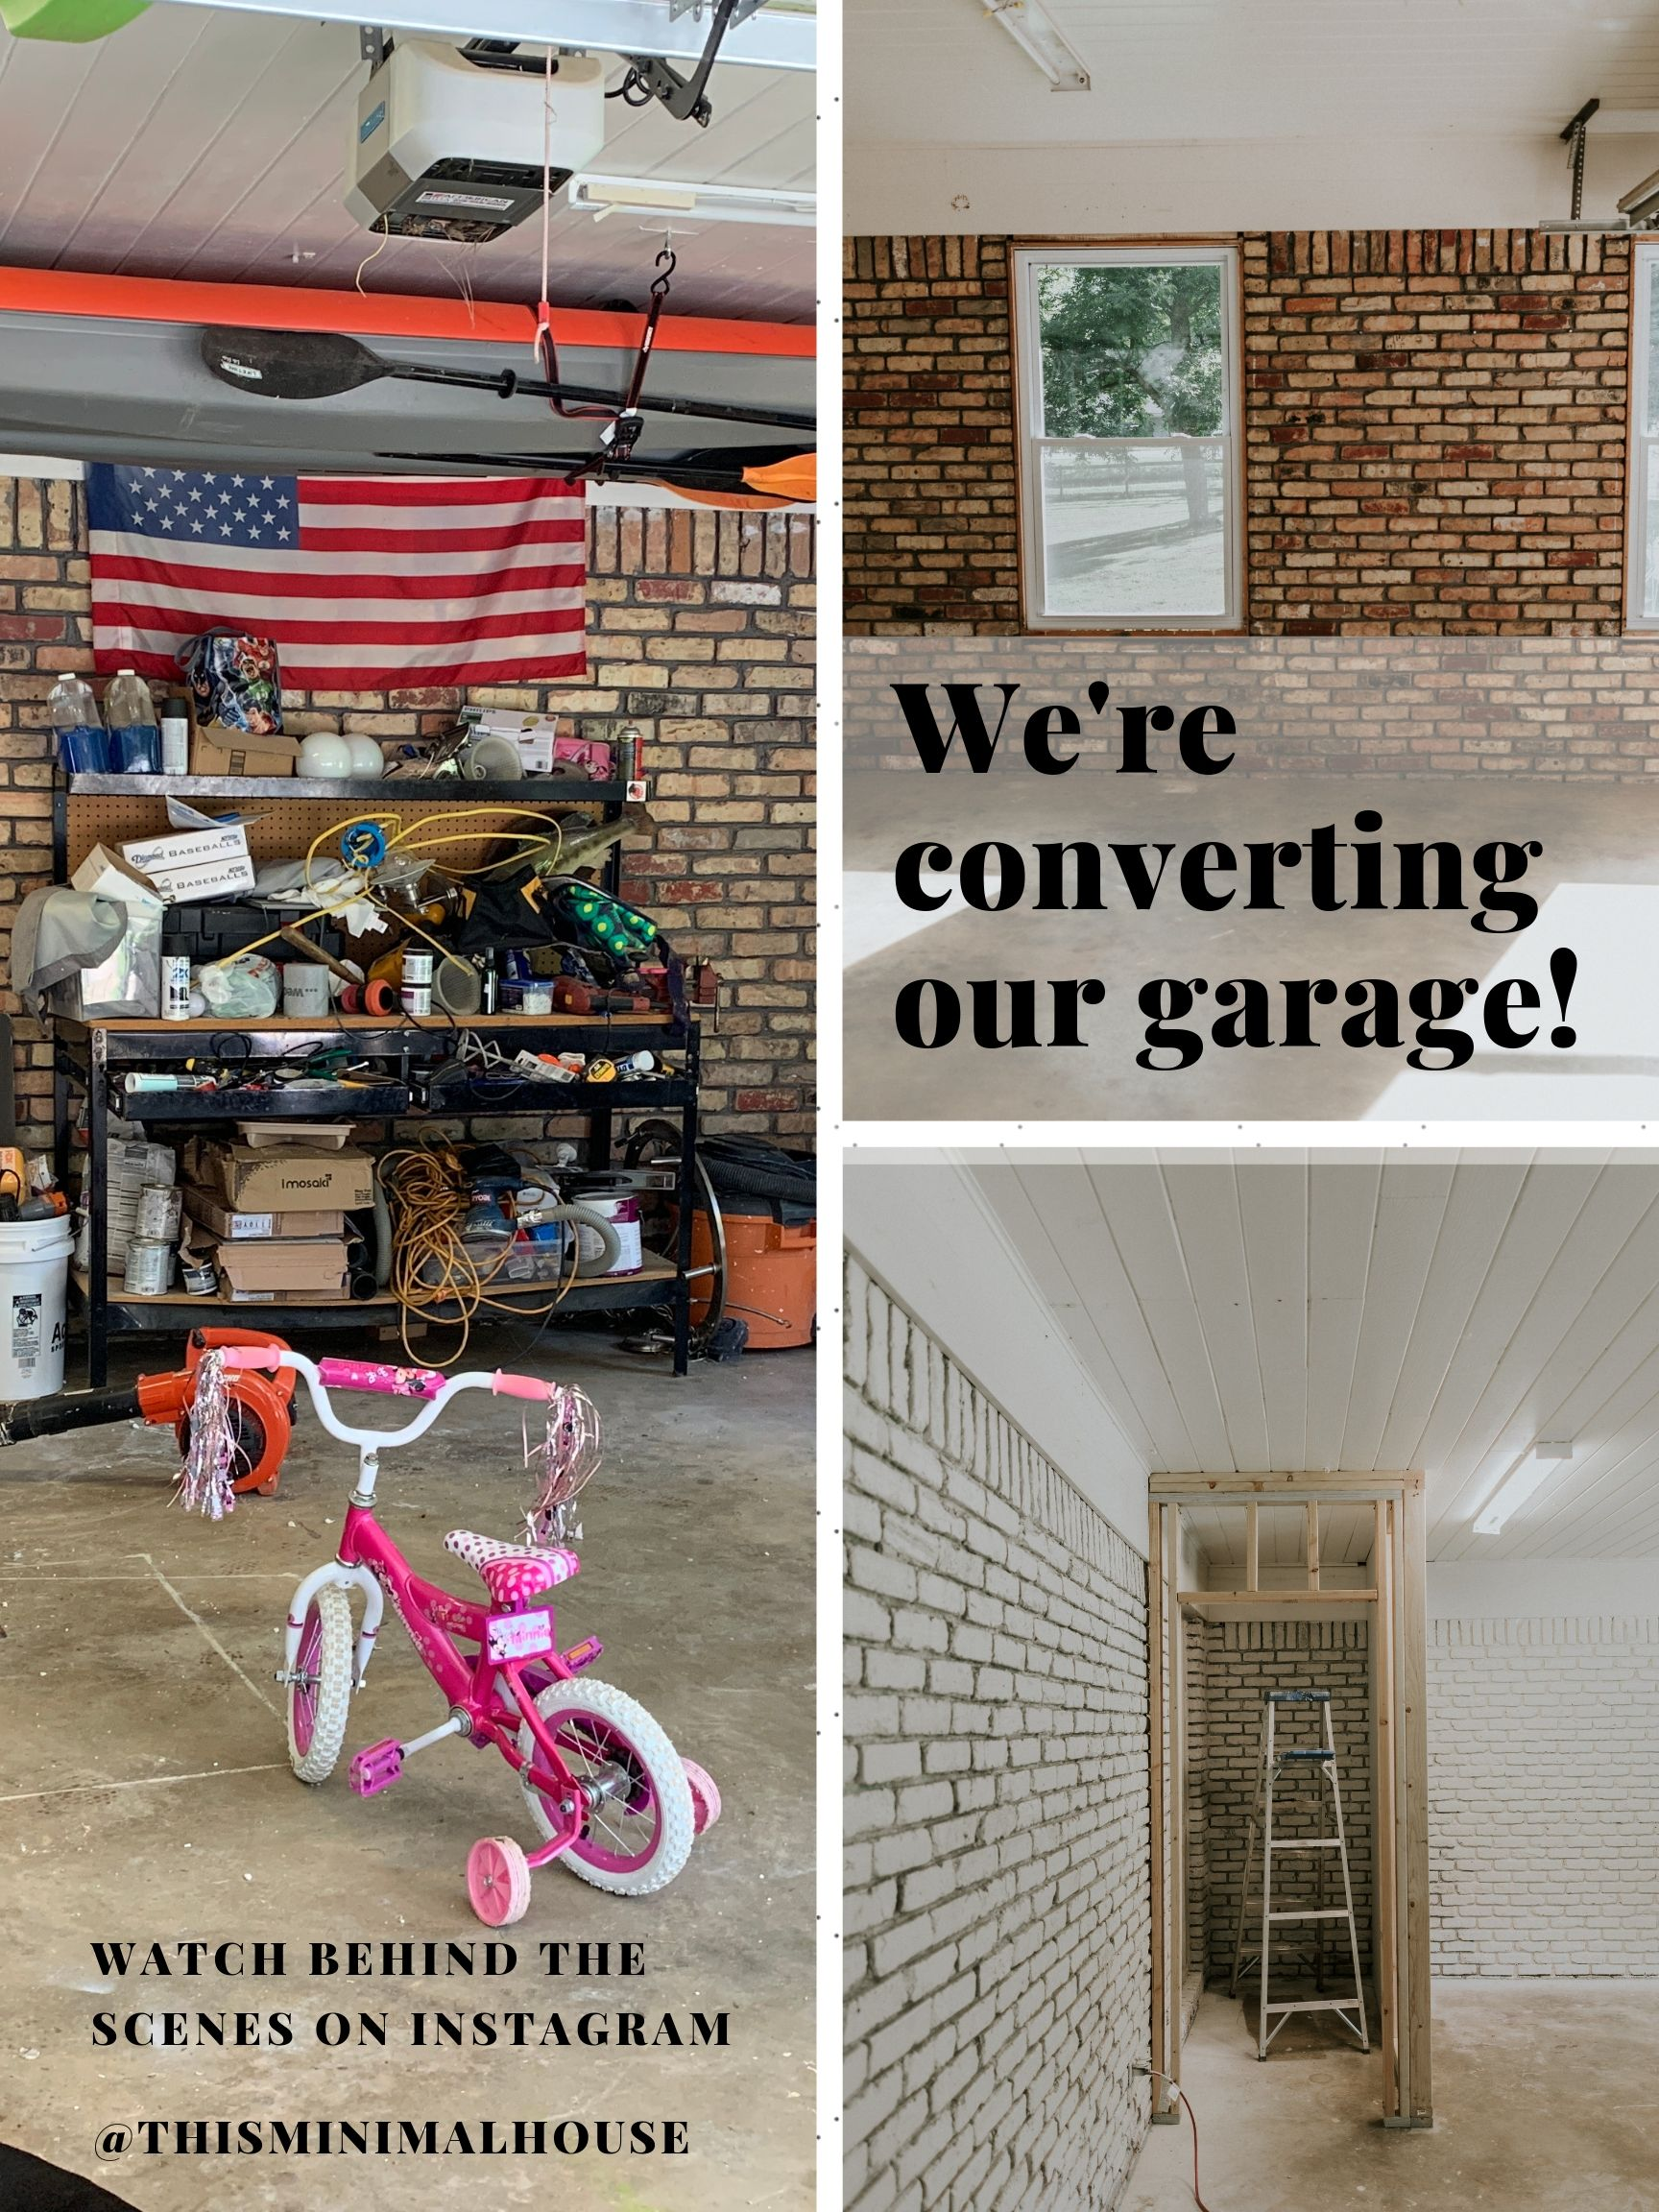 We're converting our garage!